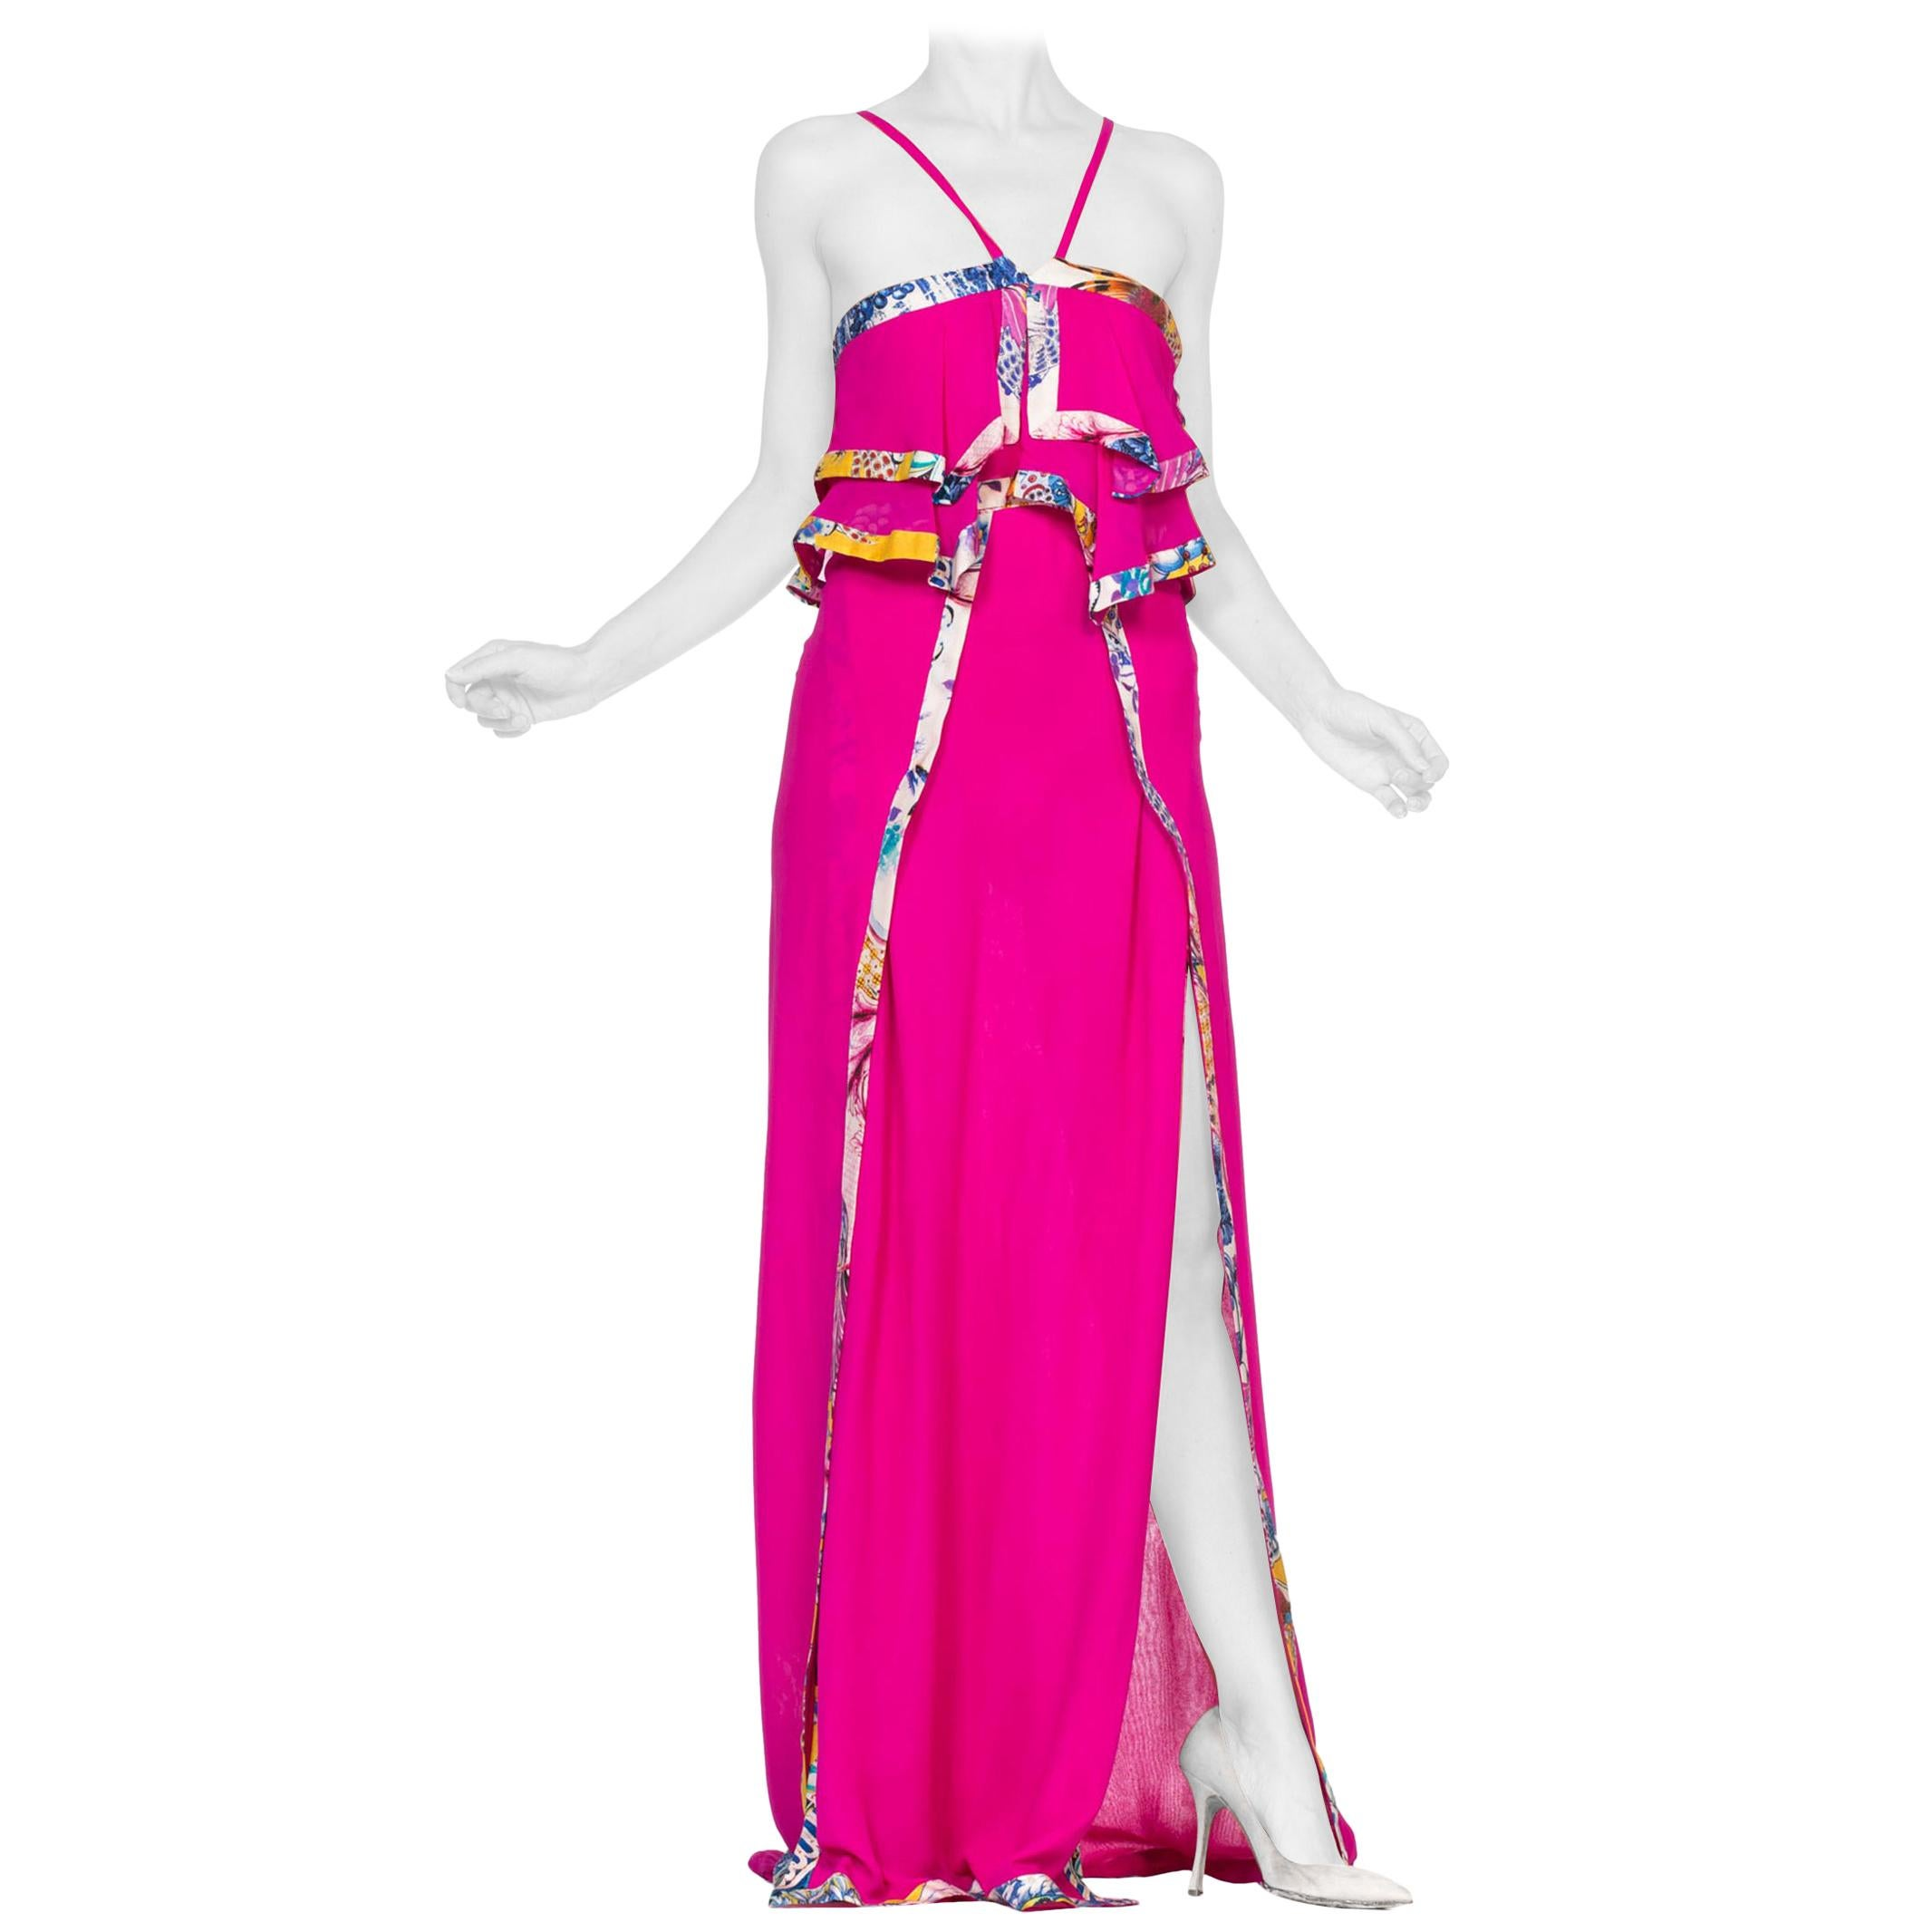 172698a1ae747 Vintage Roberto Cavalli Clothing - 470 For Sale at 1stdibs